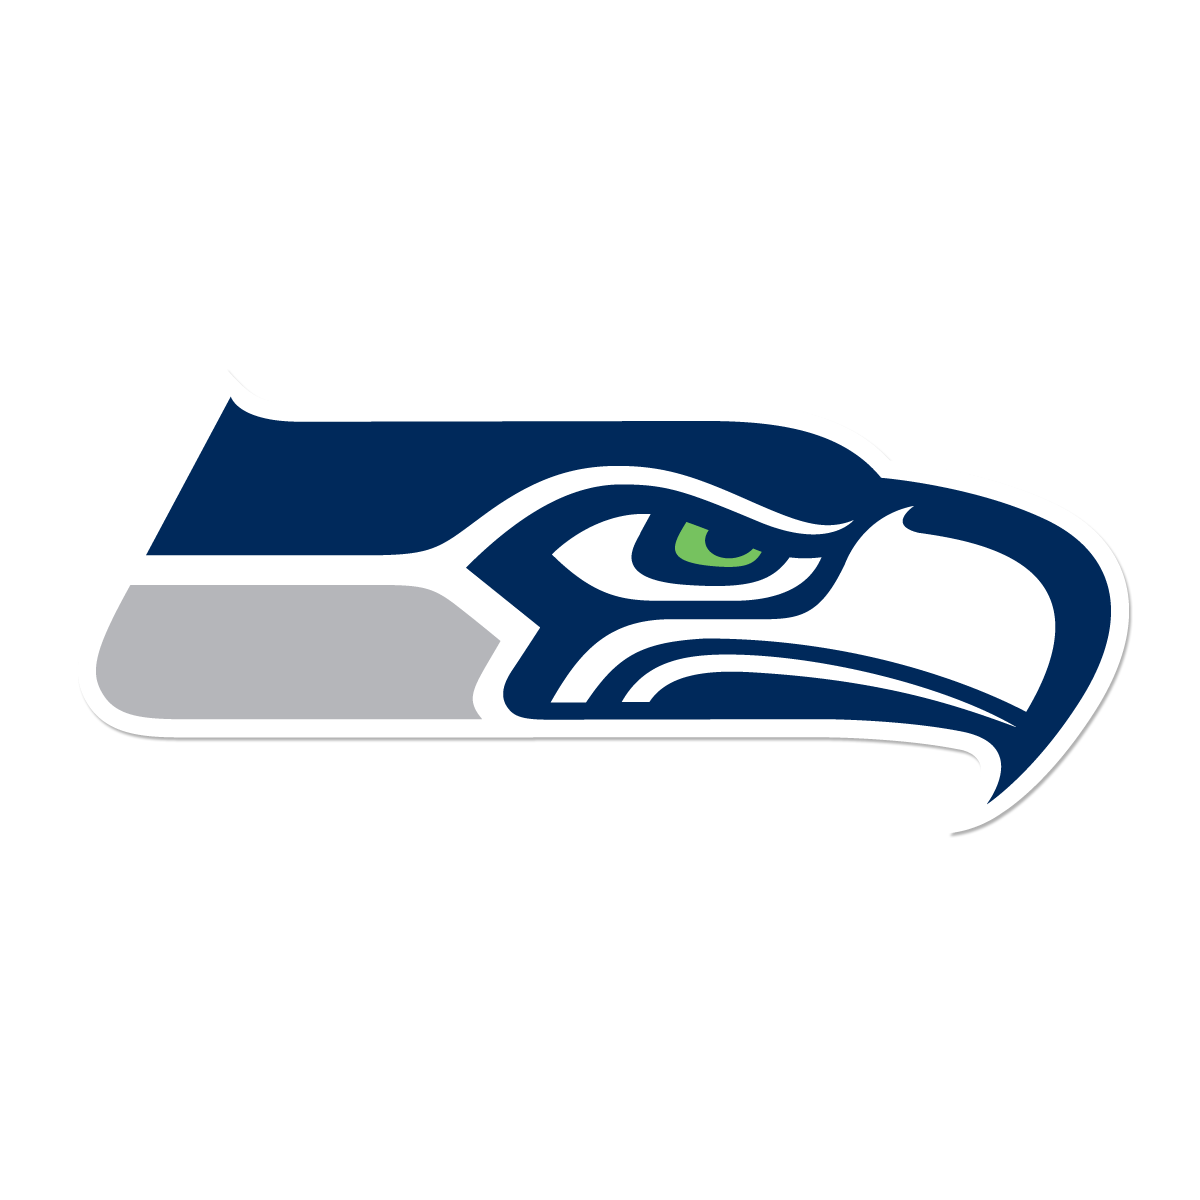 Seattle Seahawks NFL logo